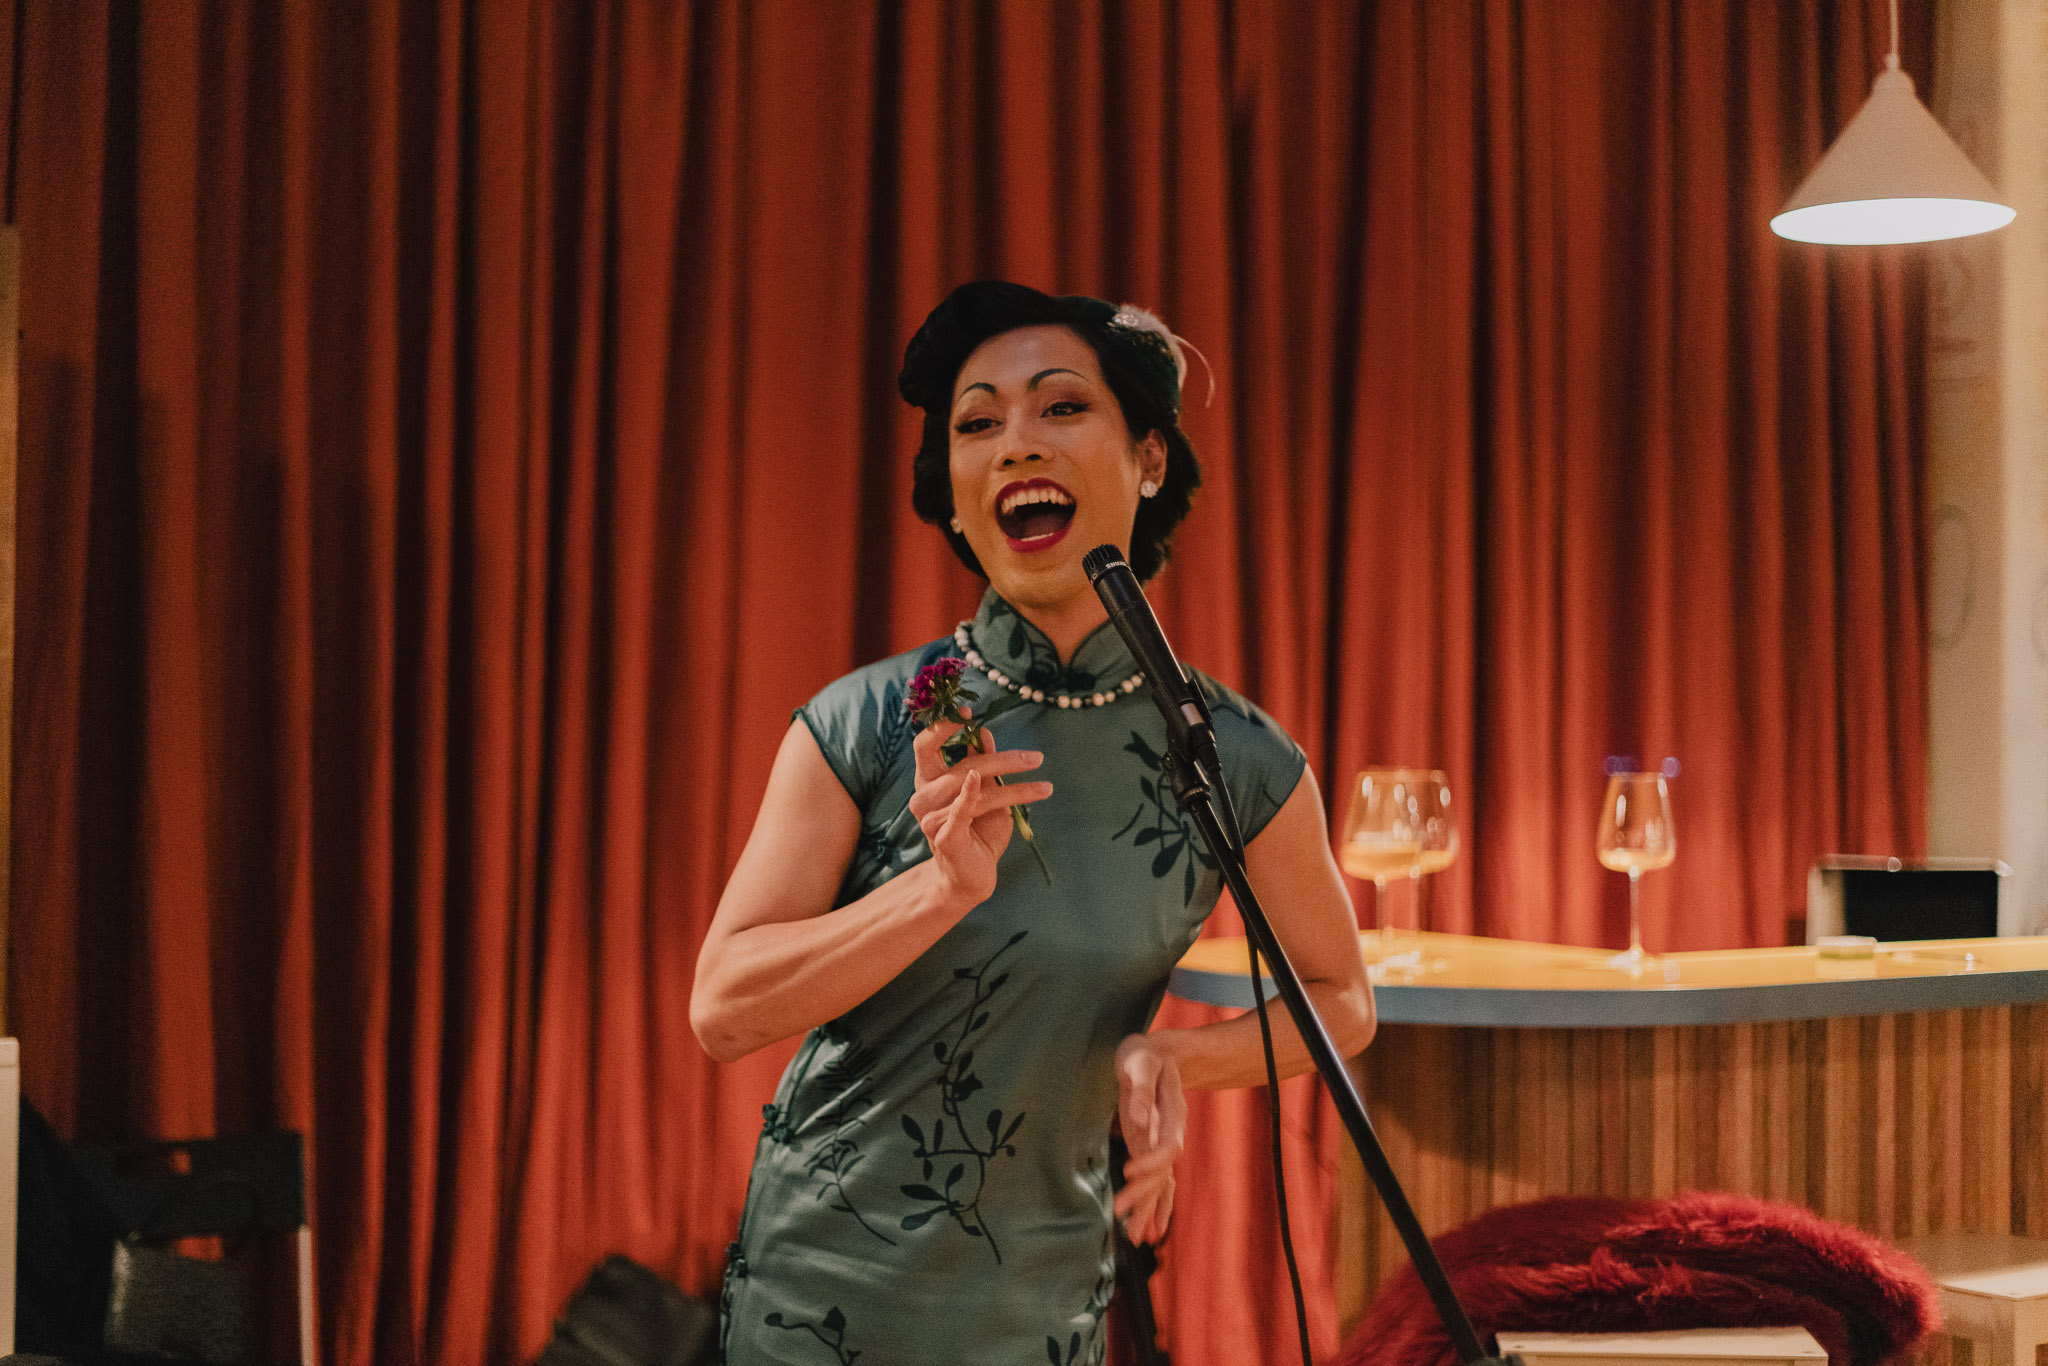 image of a performer wearing a cheongsam and lip syncing into the microphone